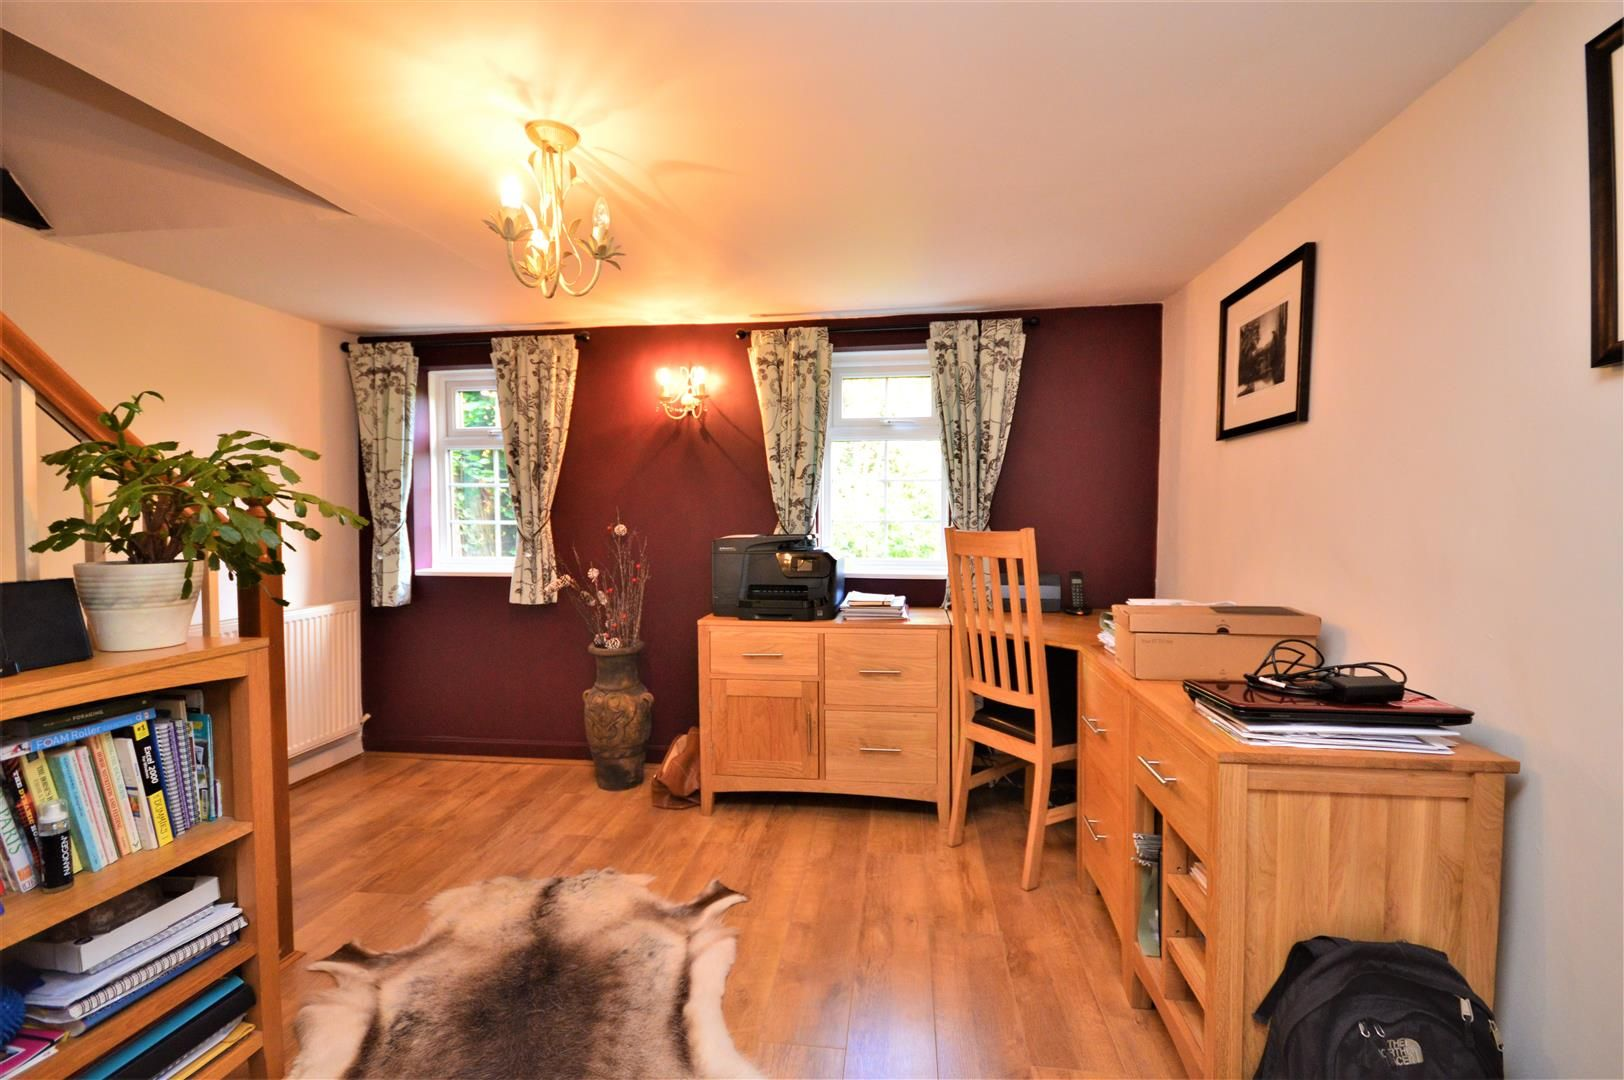 3 bed semi-detached for sale in Stretton Sugwas 8